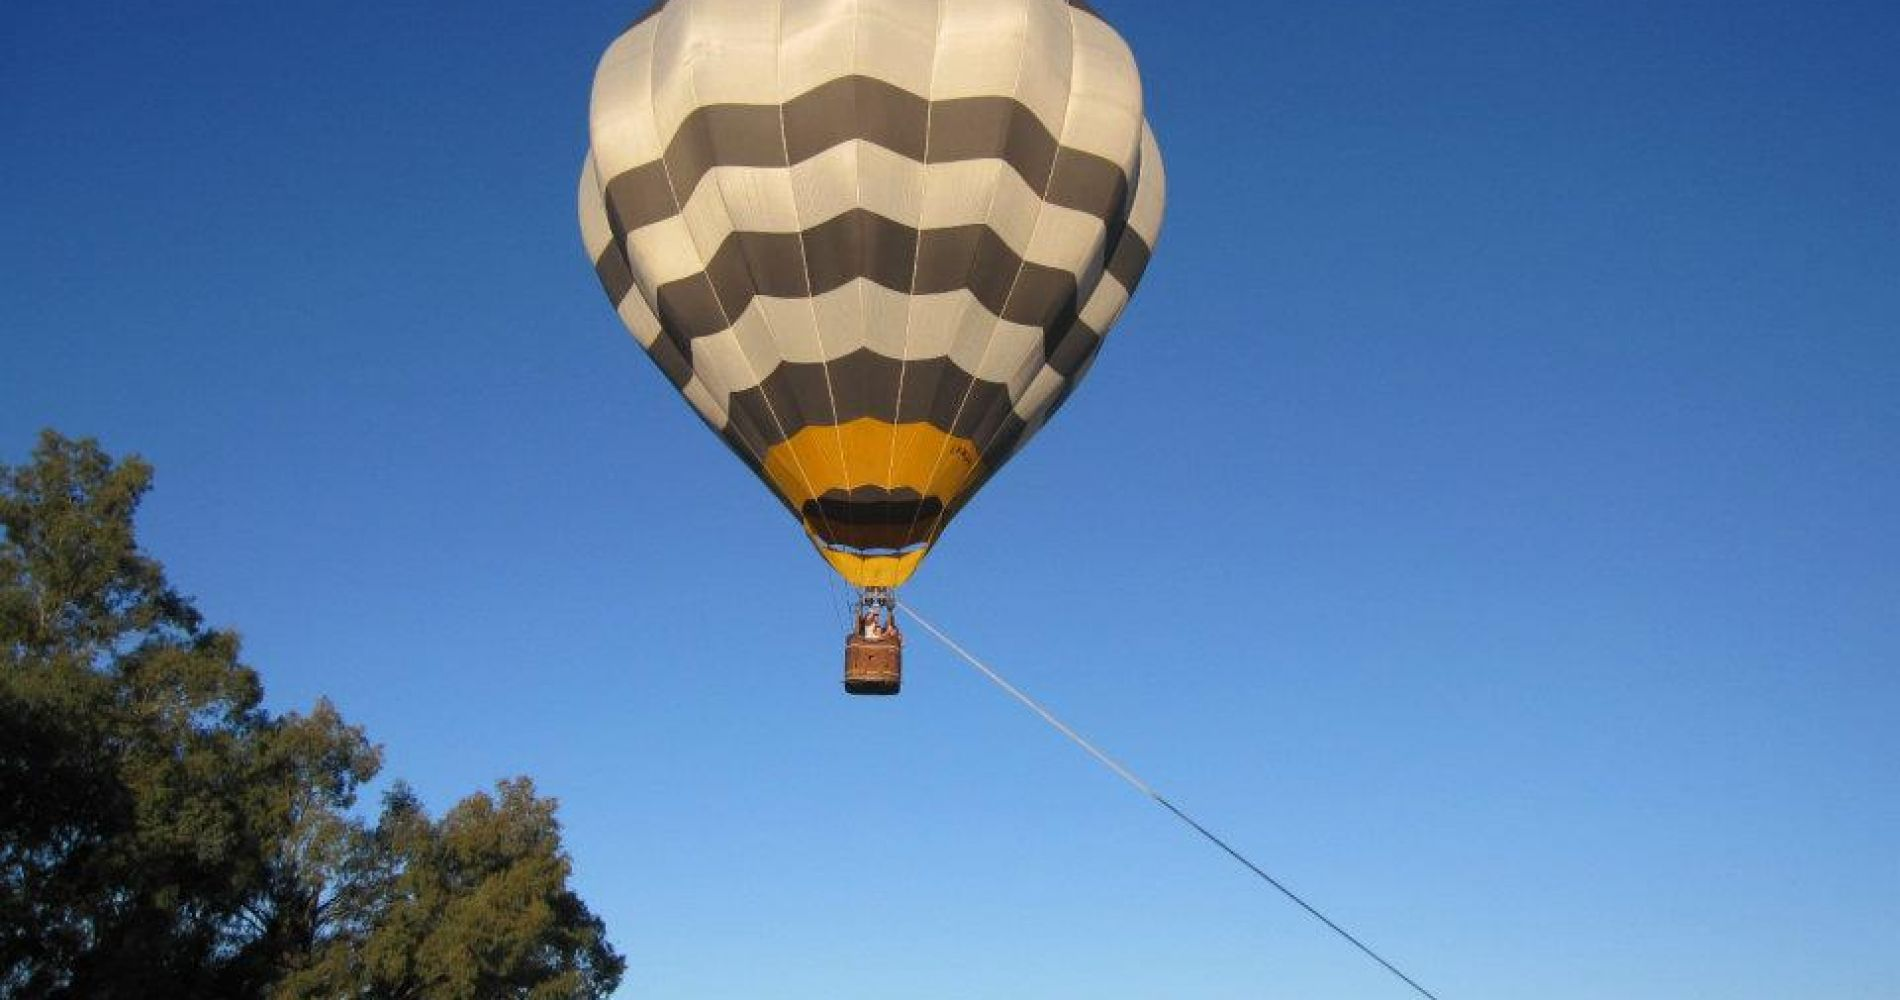 Hot air balloon flight over Andes Mountains in Mendoza